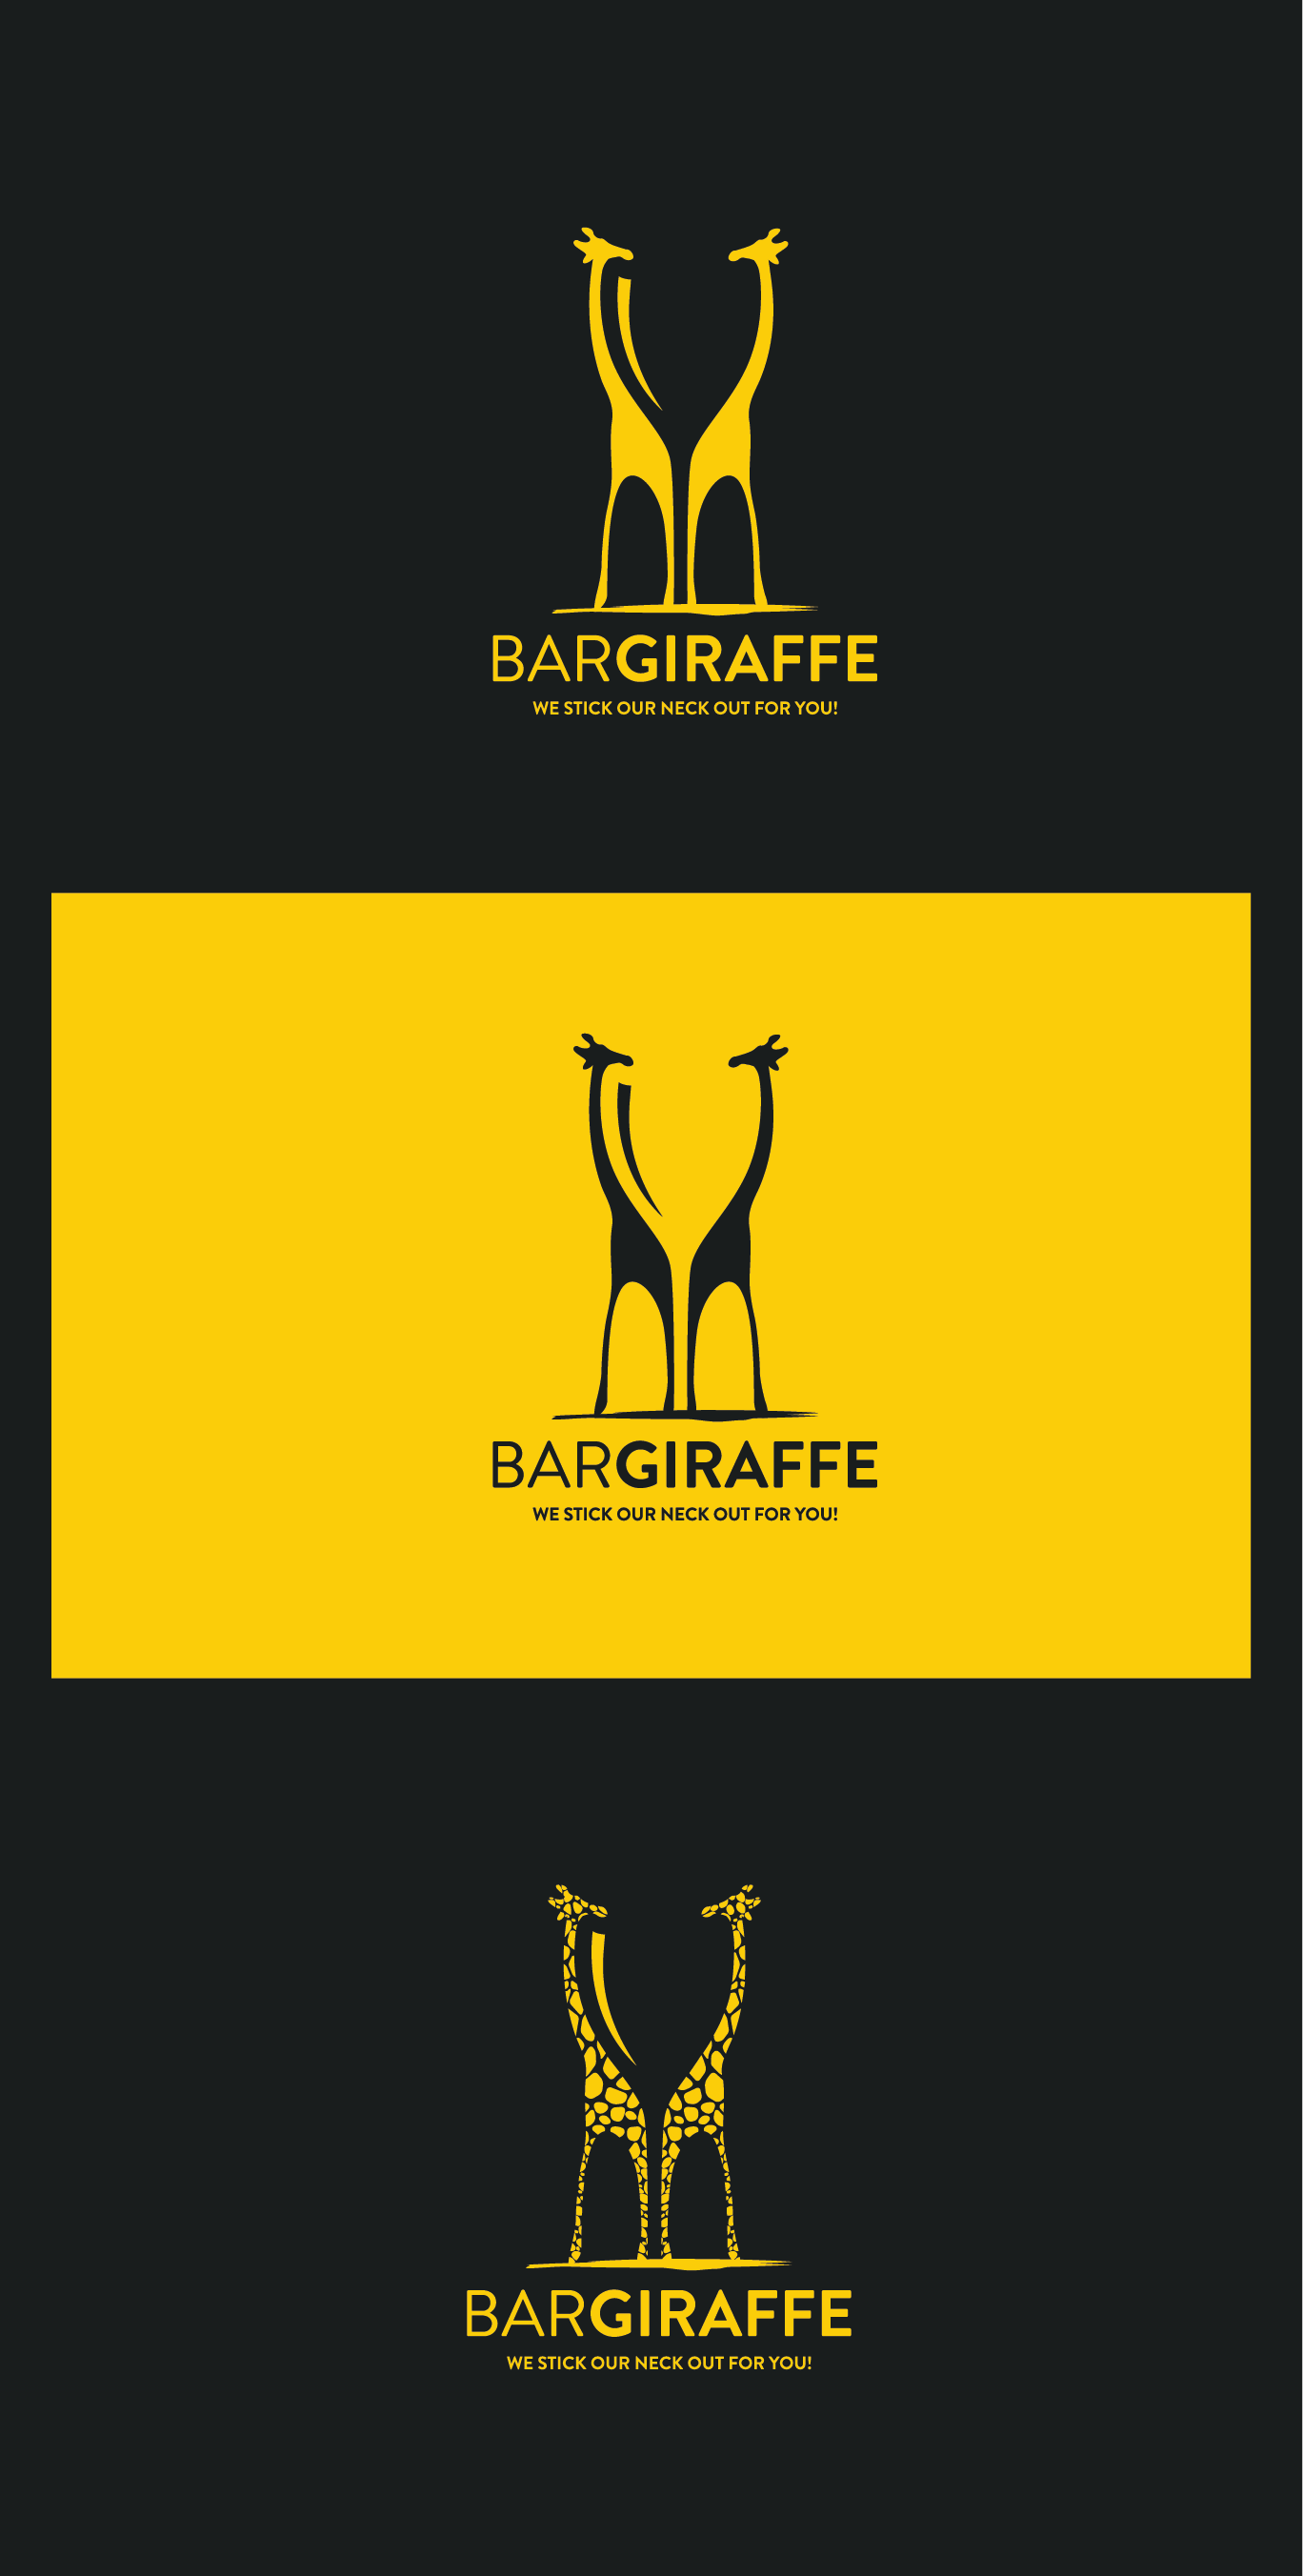 Negative space logo by Point.0 for BarGiraffe, a startup